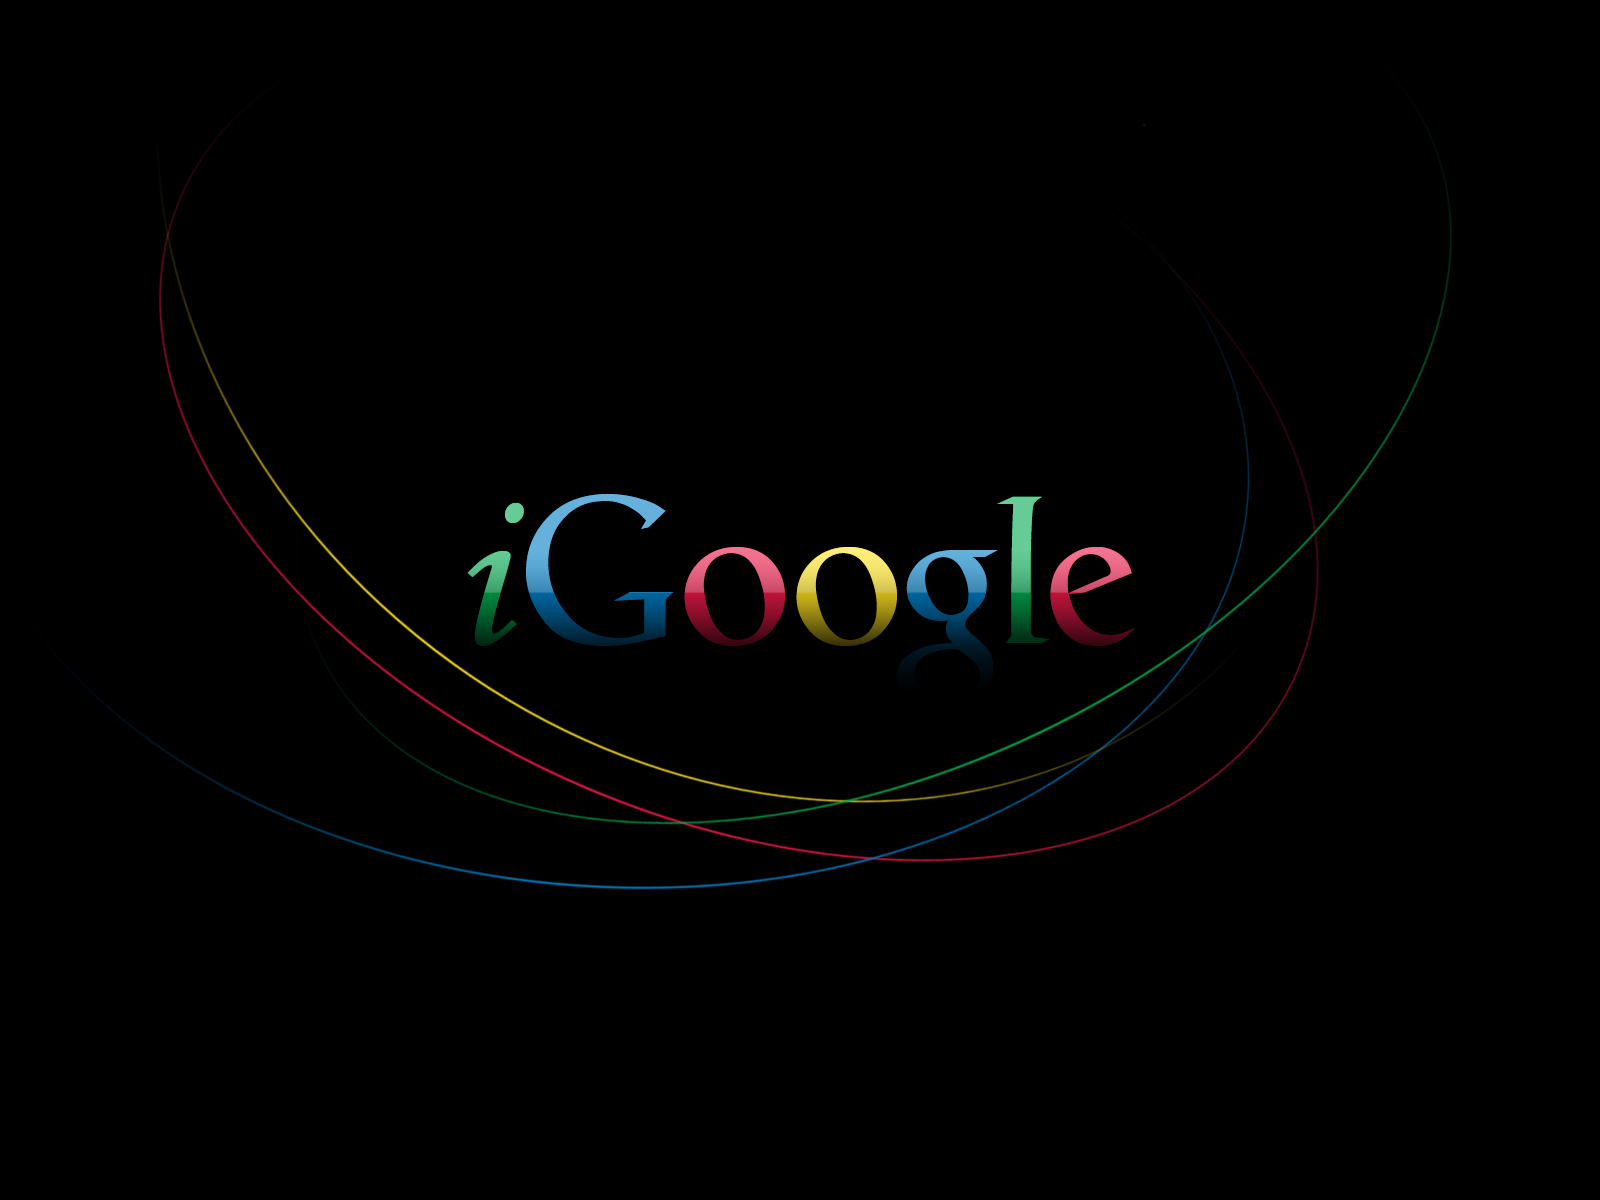 Google Pictures (1600x1200, IEG1313)